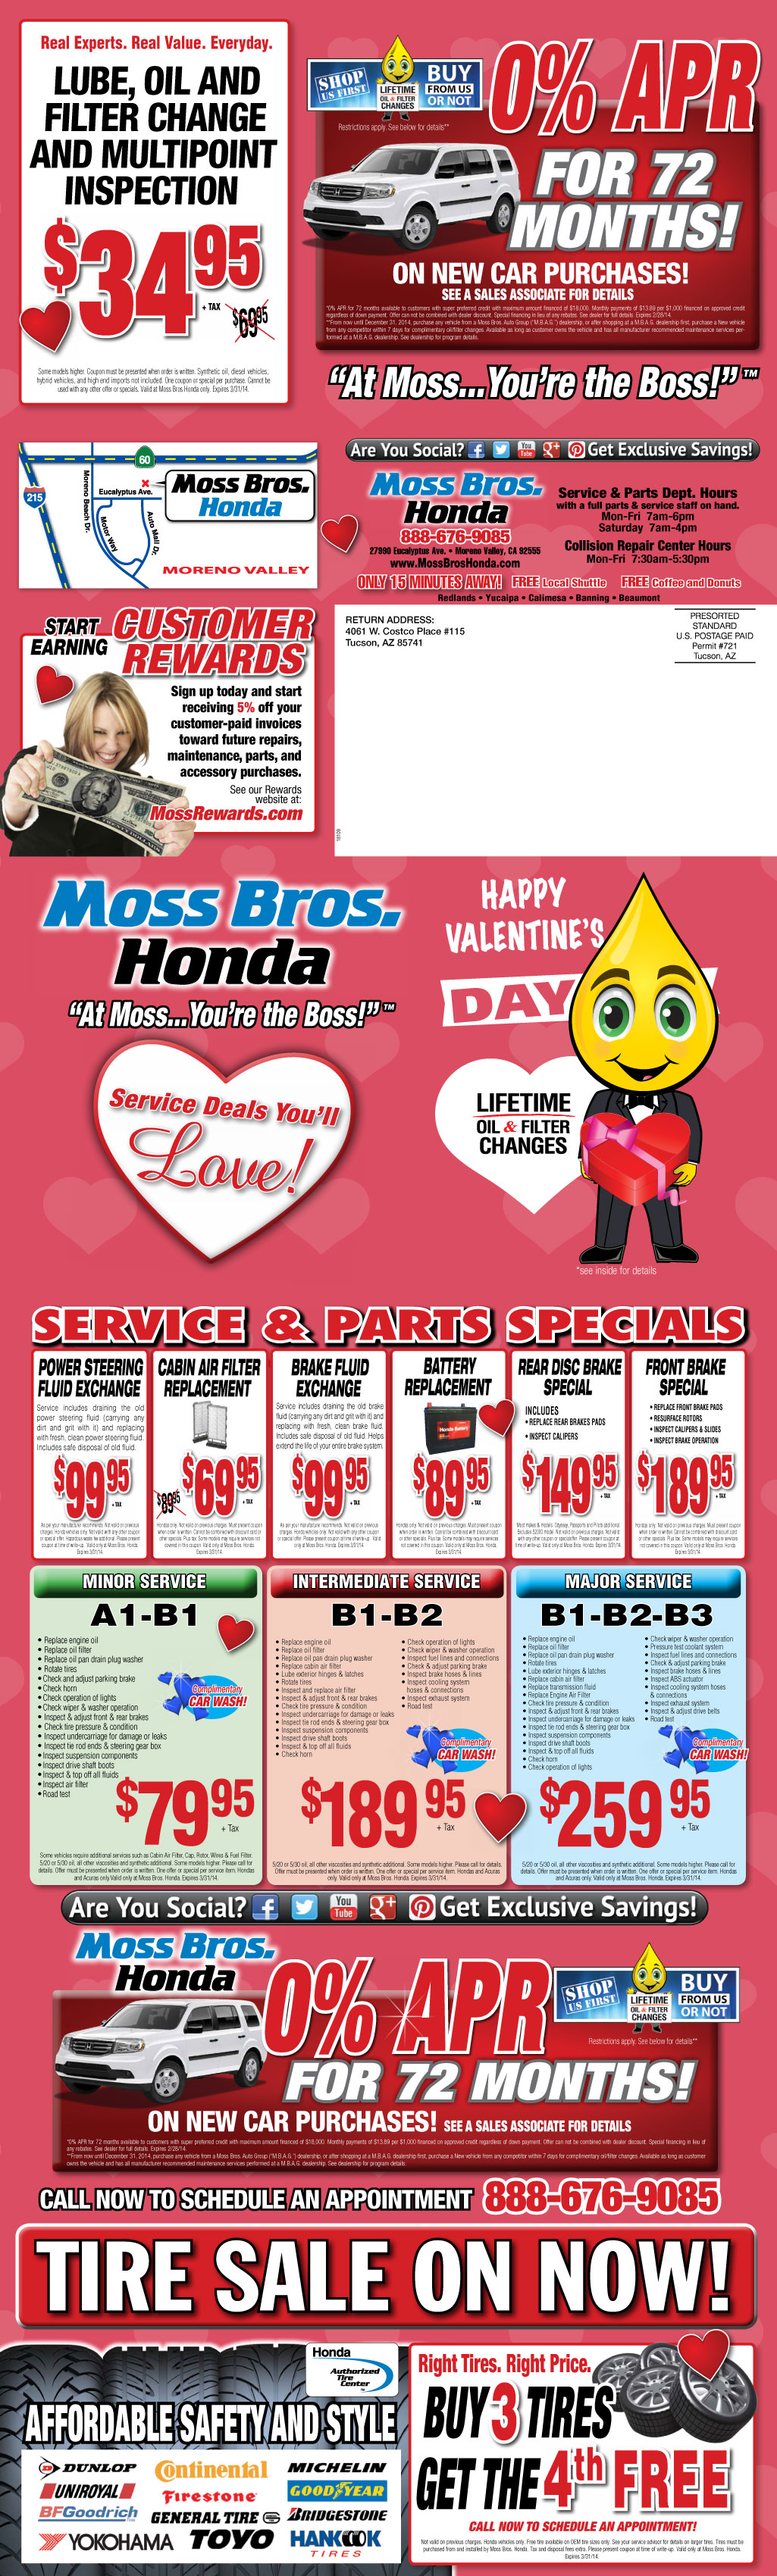 Pre Owned Vehicle Specials Moss Bros Auto Group ...